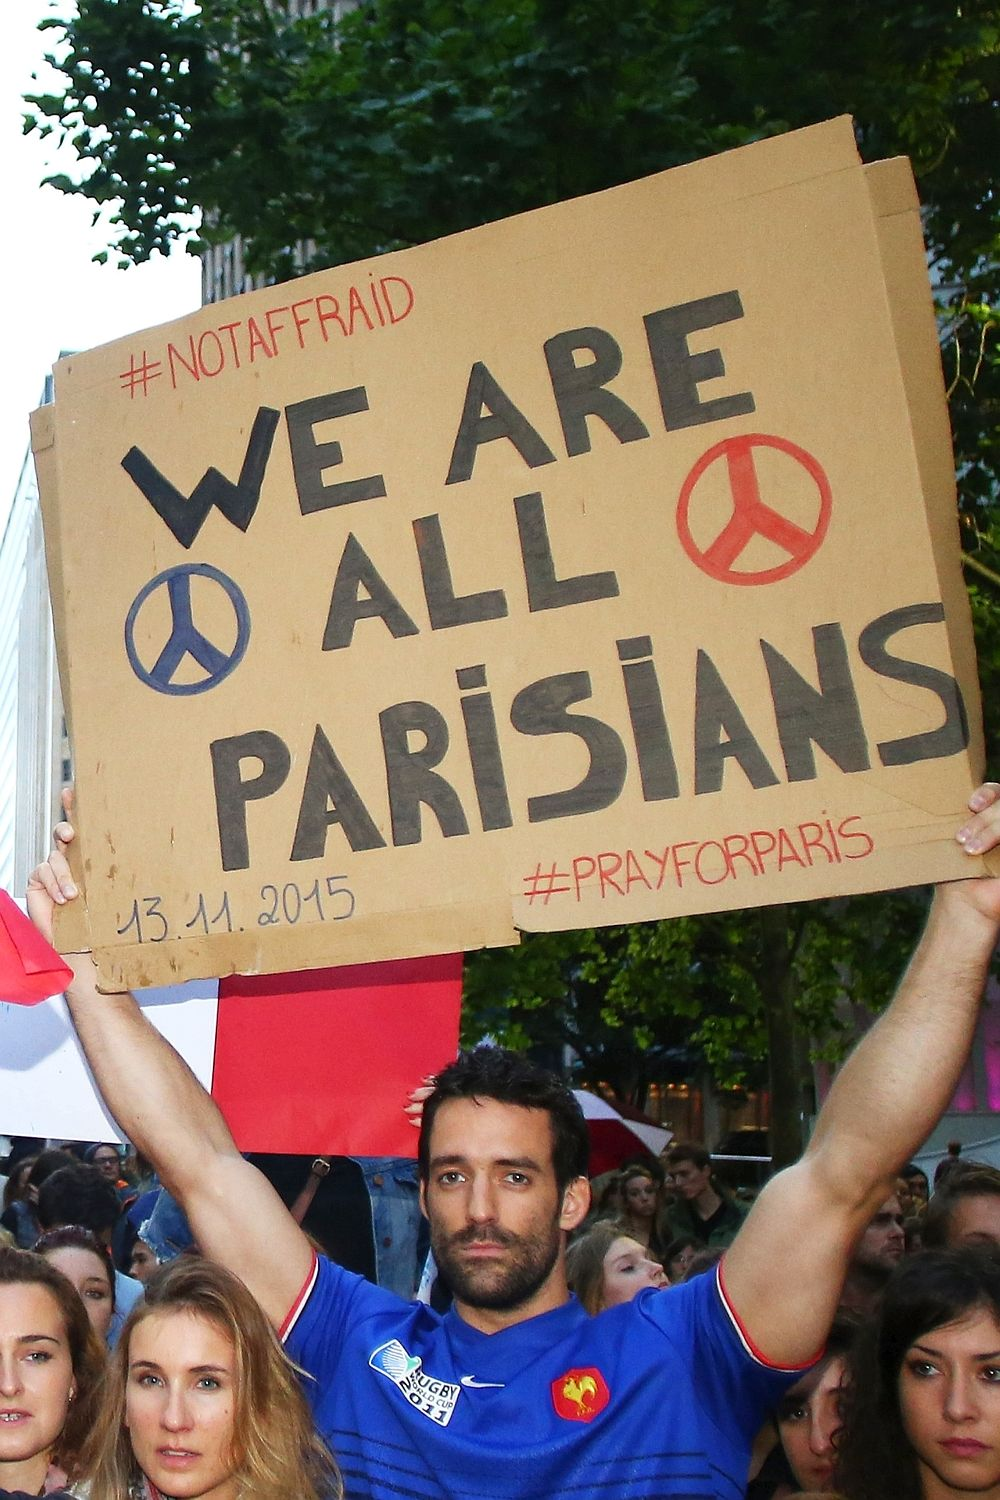 We are all Parisians